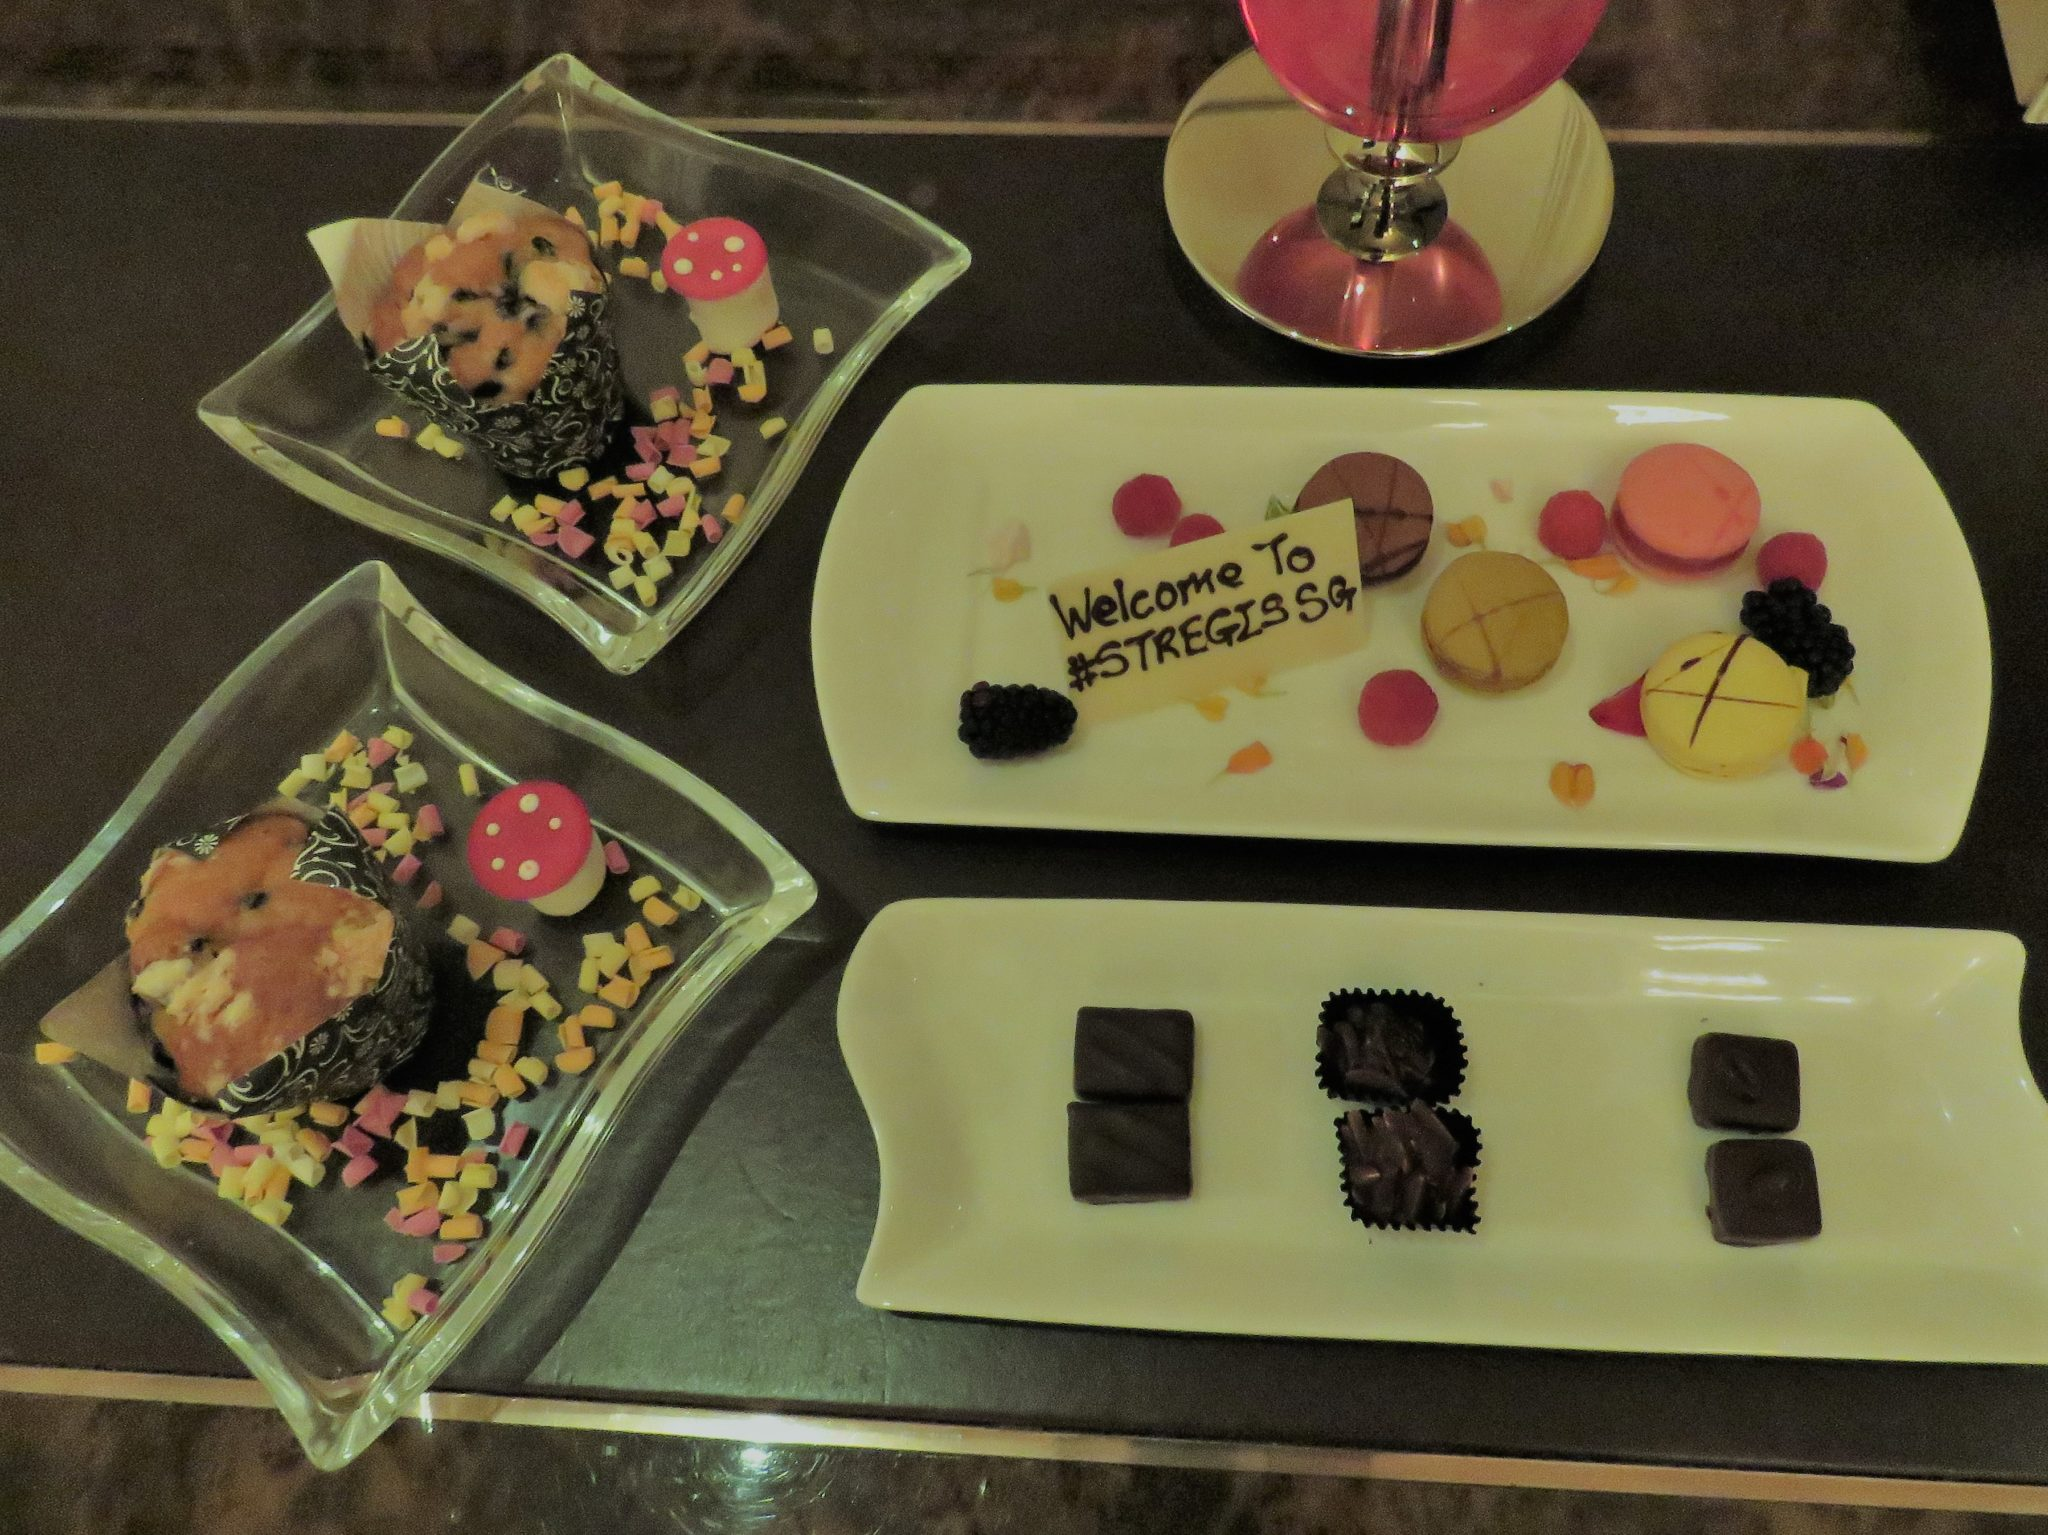 St. Regis Singapore review